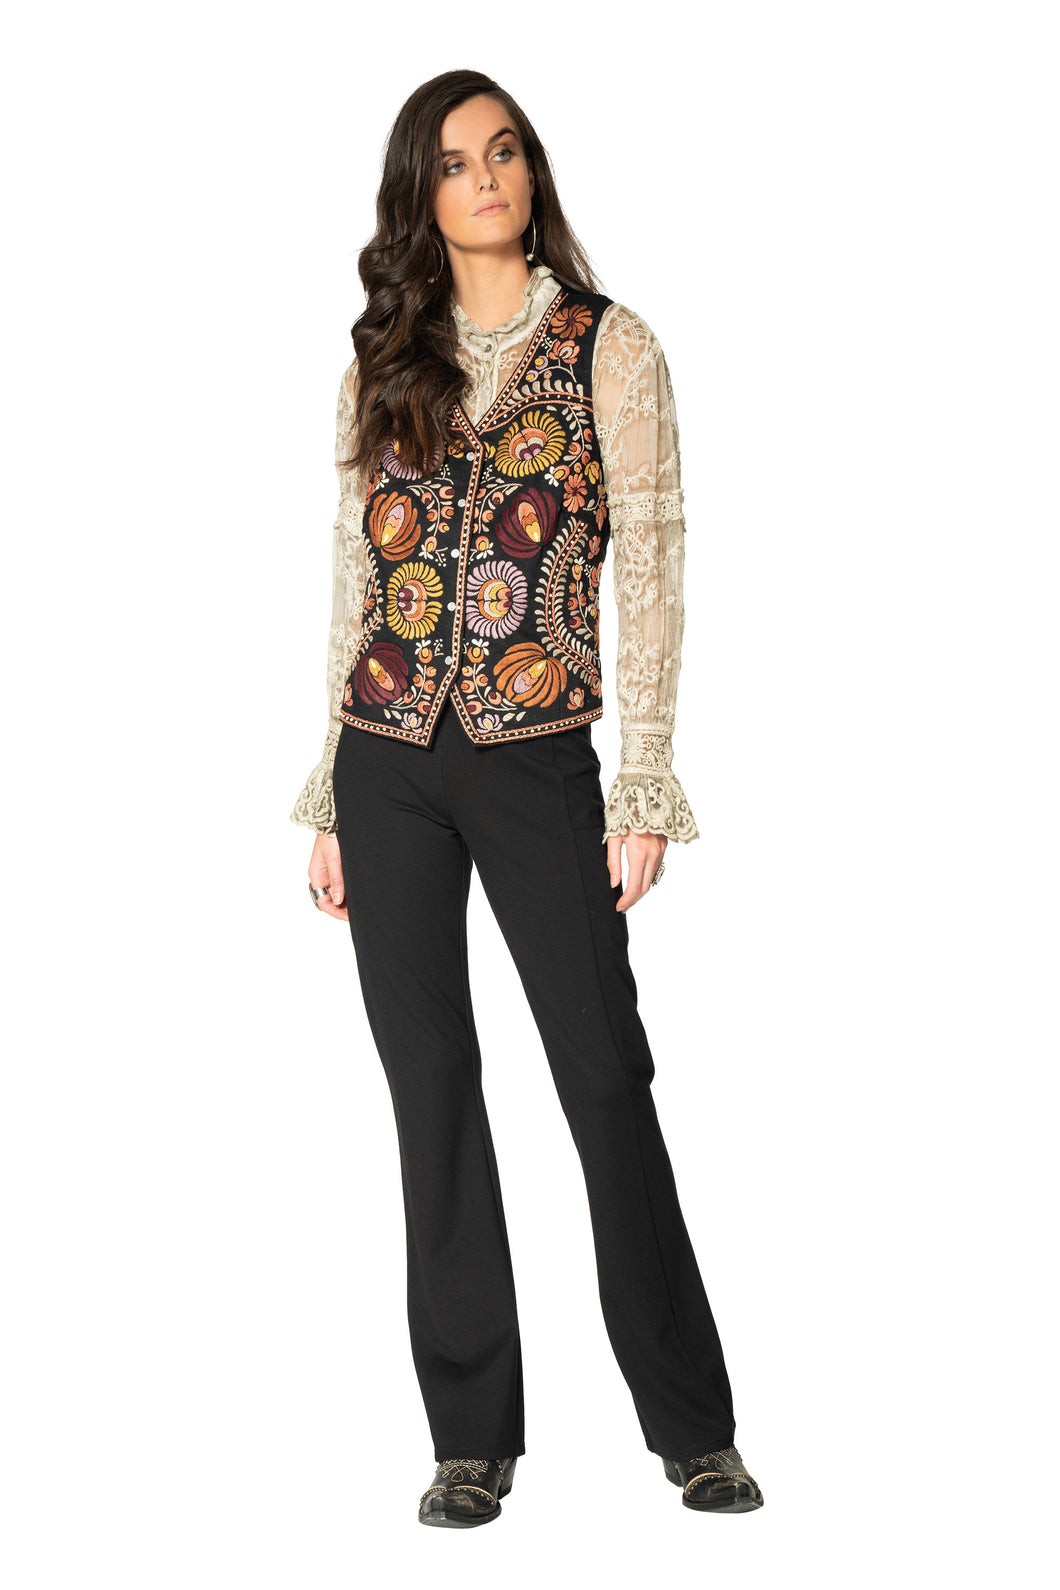 DDR Black and Embroidery Chiapas Vest at 6Whiskey six whisky Maira Spring 2021